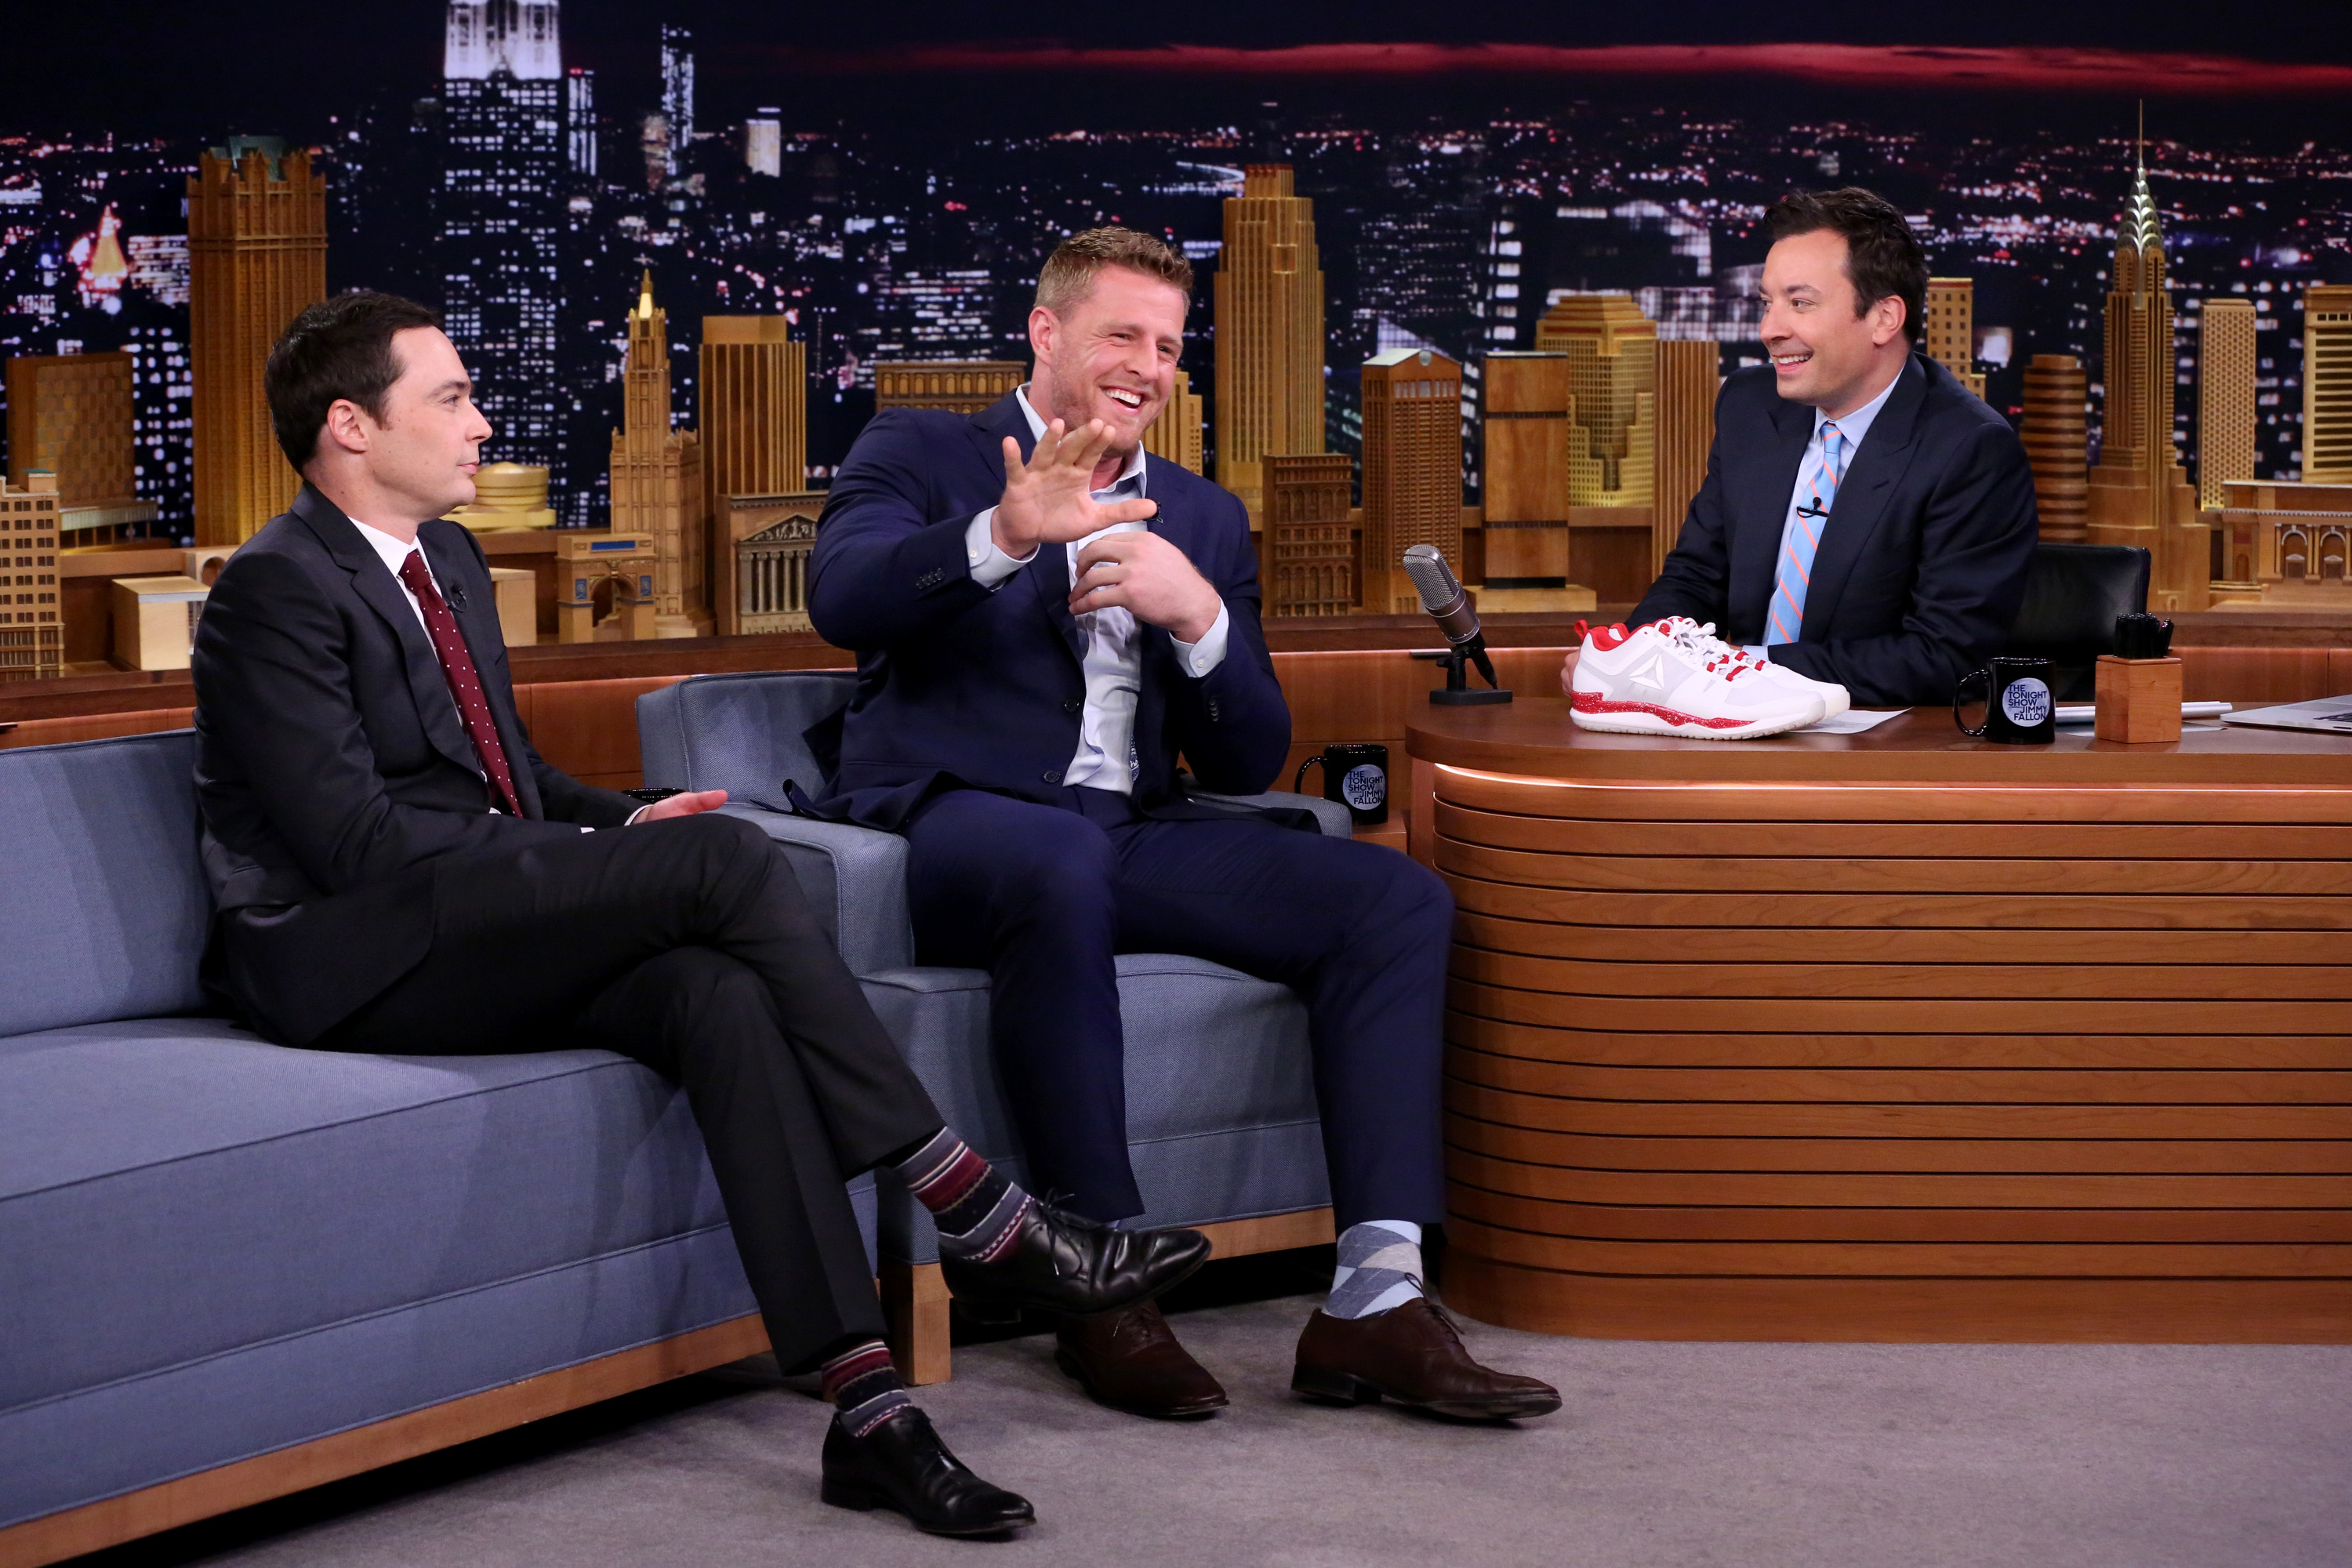 NFL player J.J. Watt and Jimmy Fallon